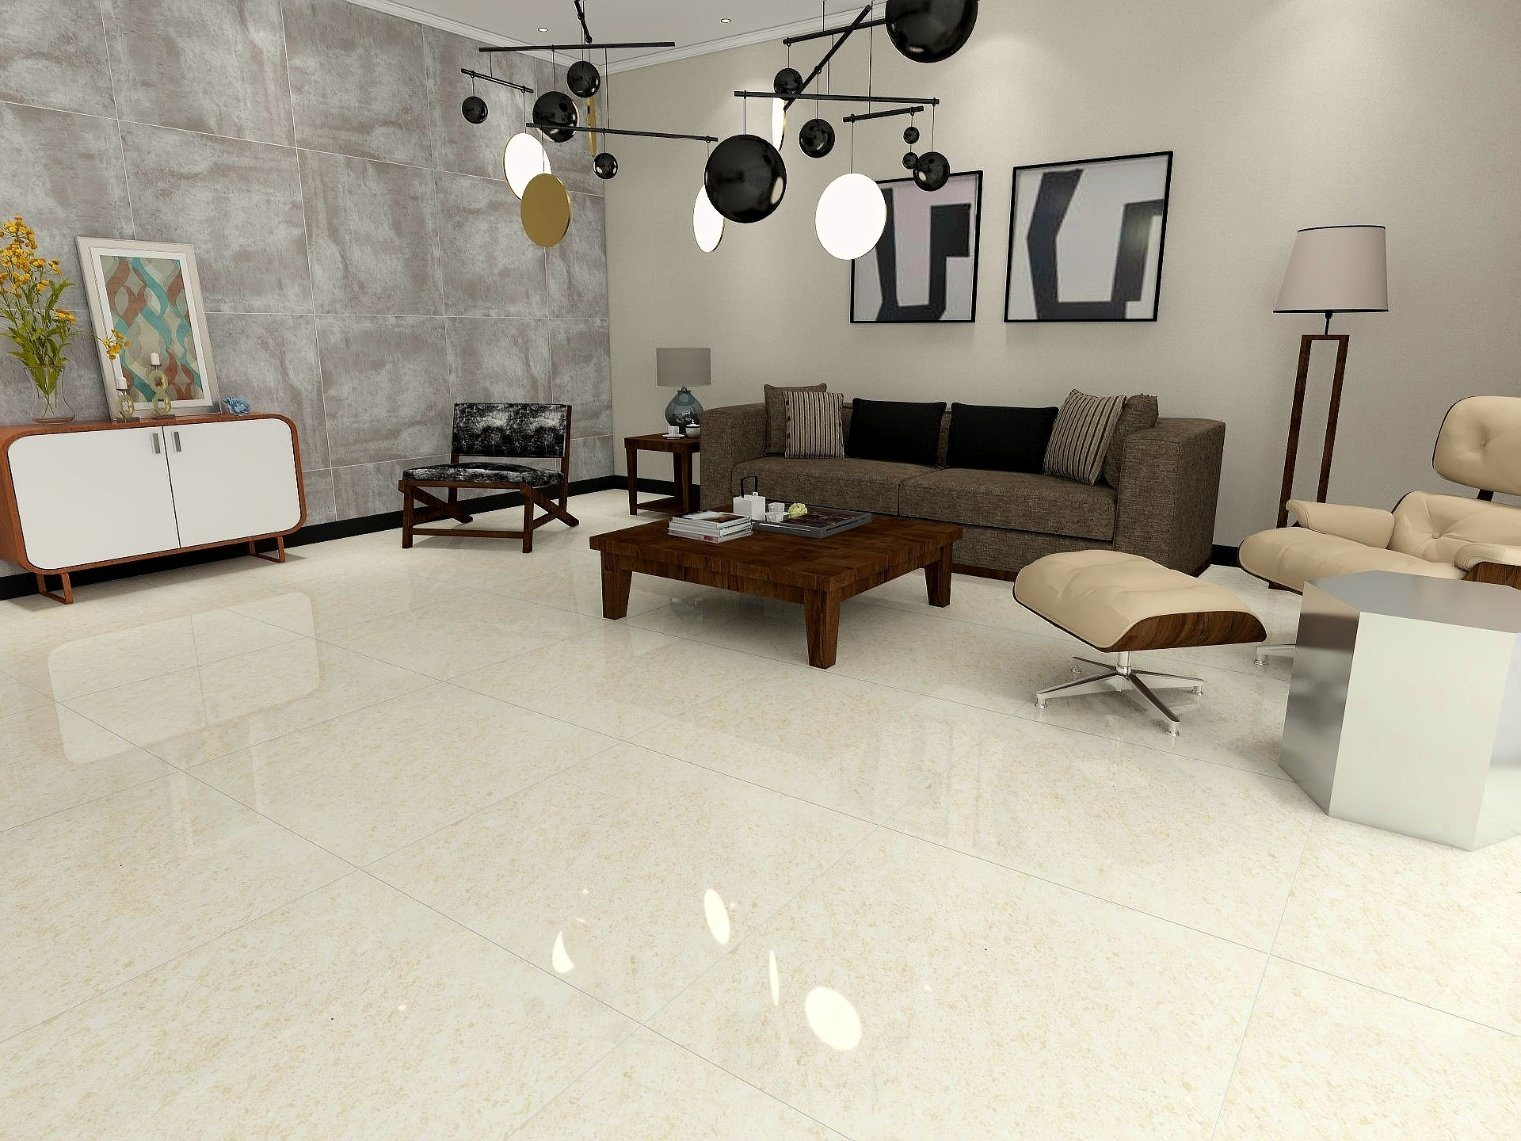 China Hot Sale Model Marble Look Flooring Tiles With Prices In Pakistan Sri Lanka China Stone Tile Natural Stone